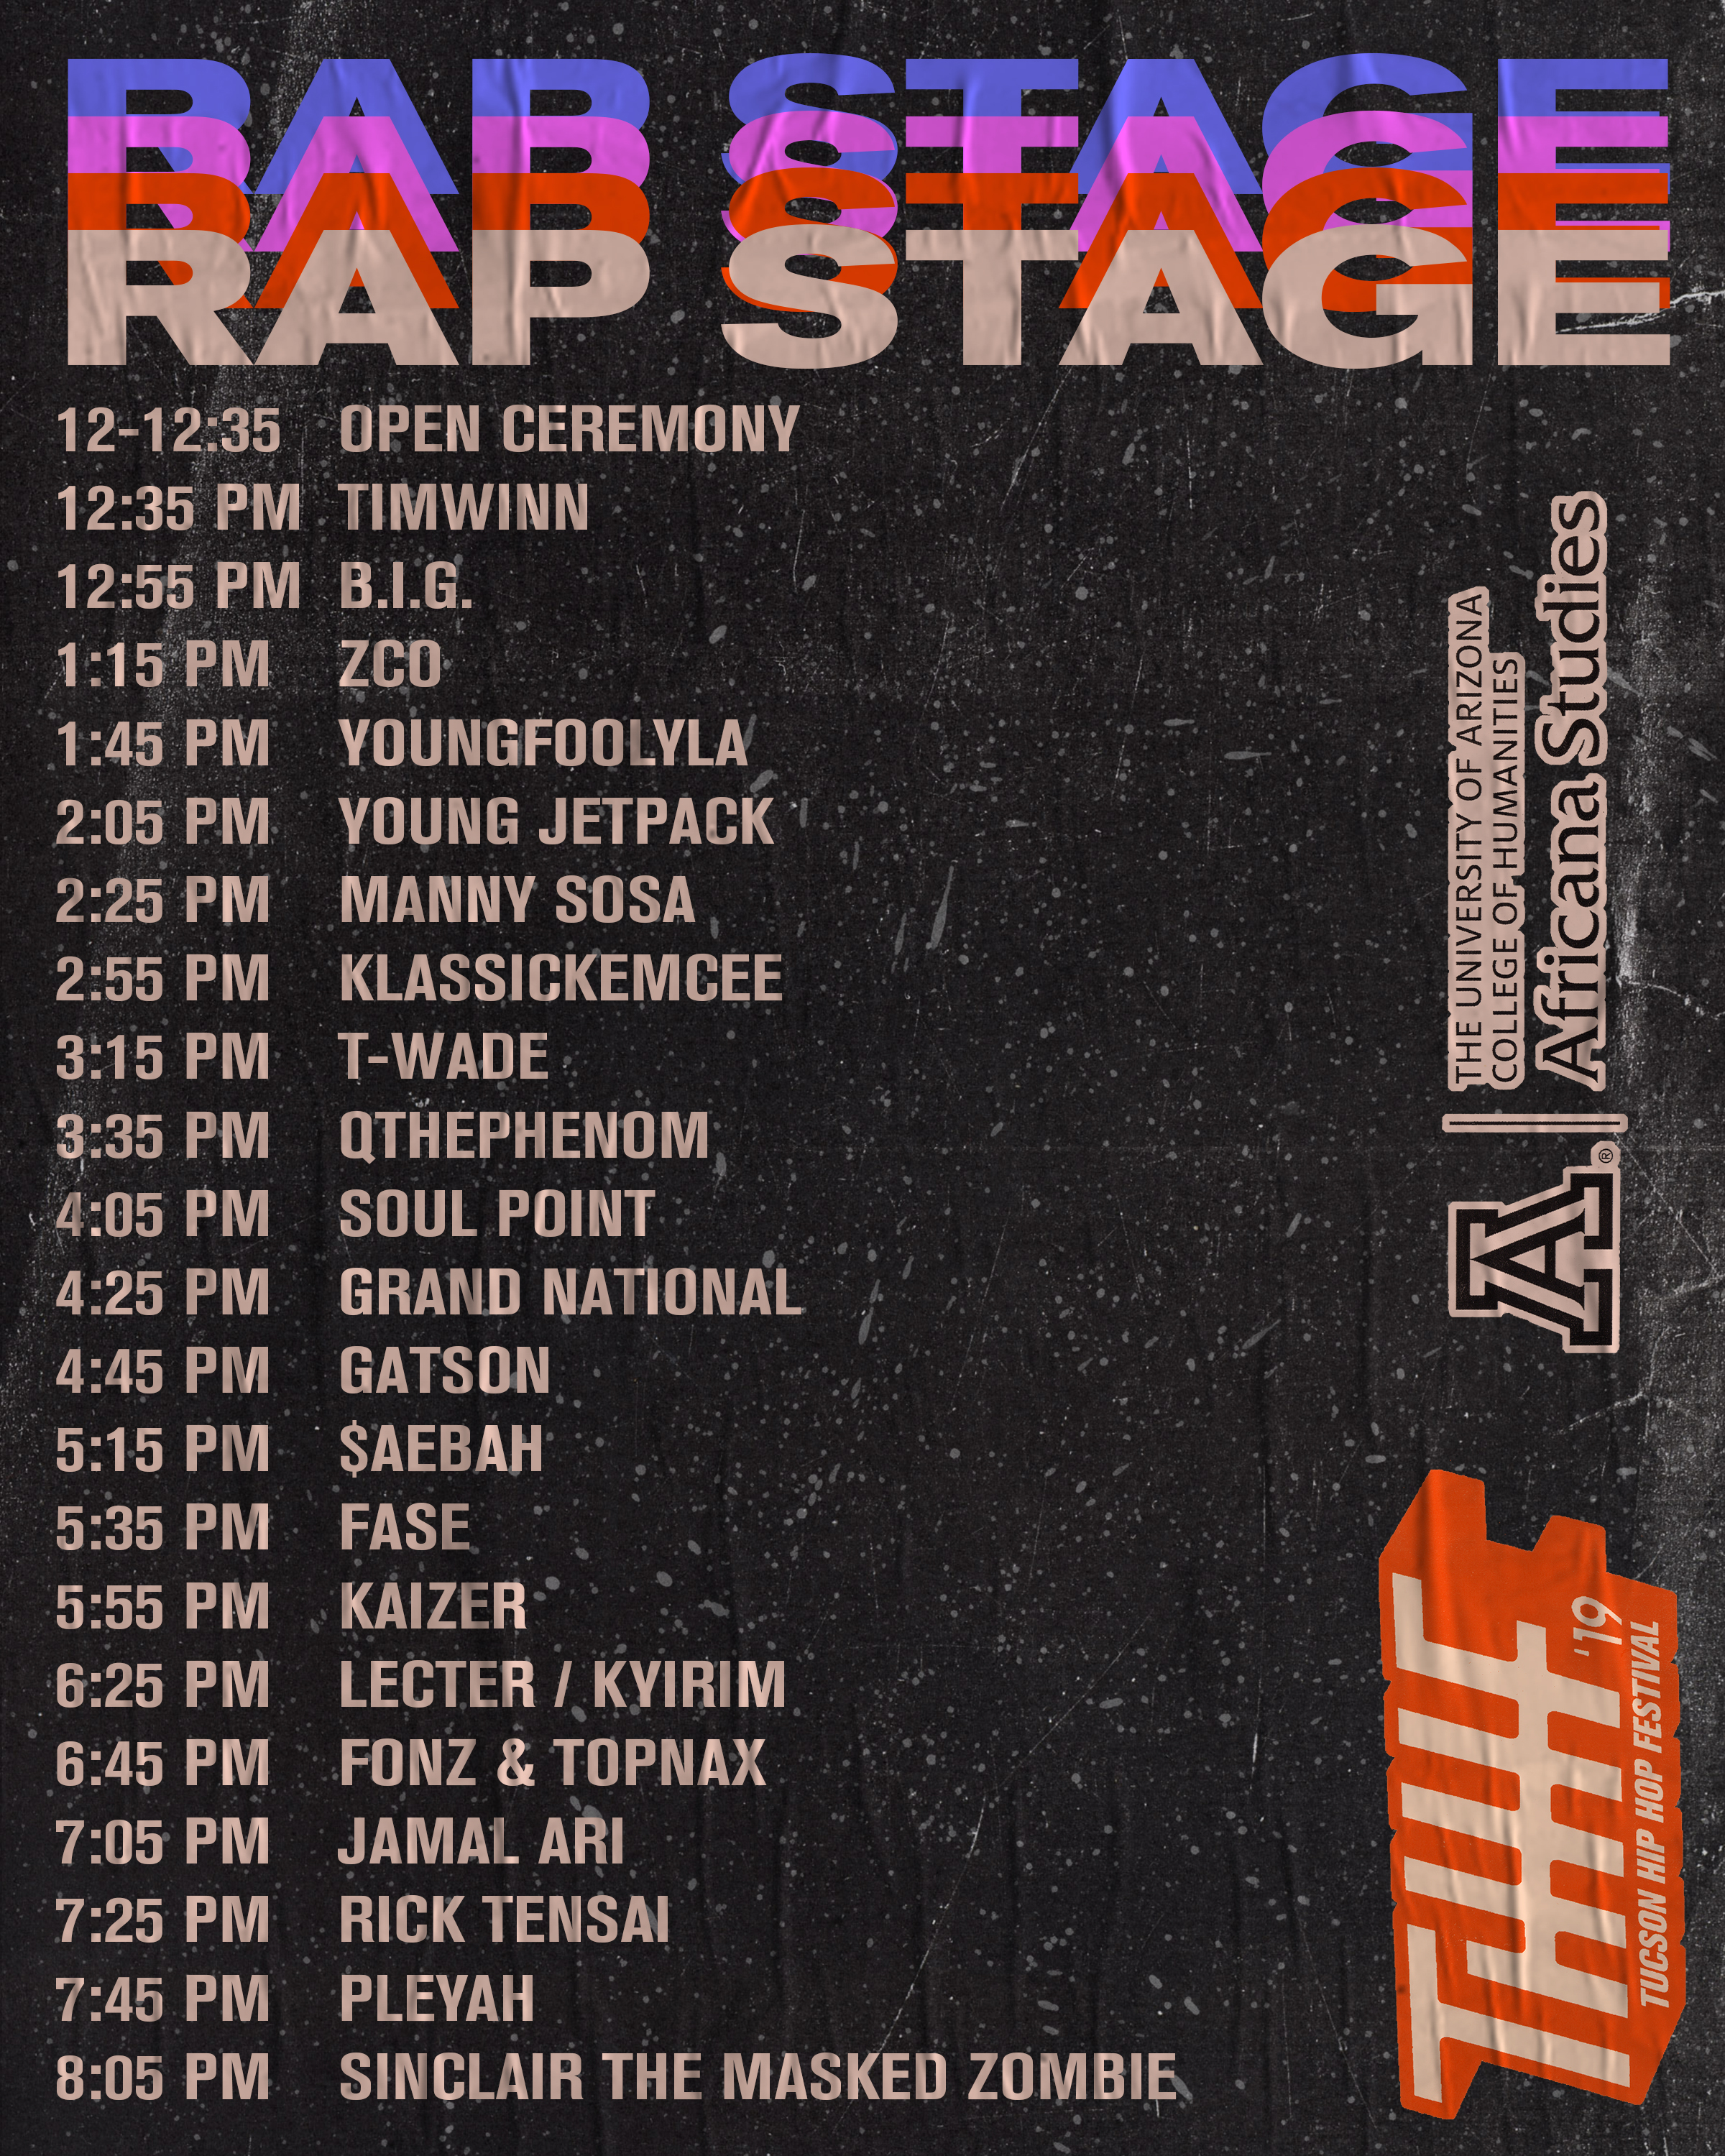 RAP STAGE set times.jpg